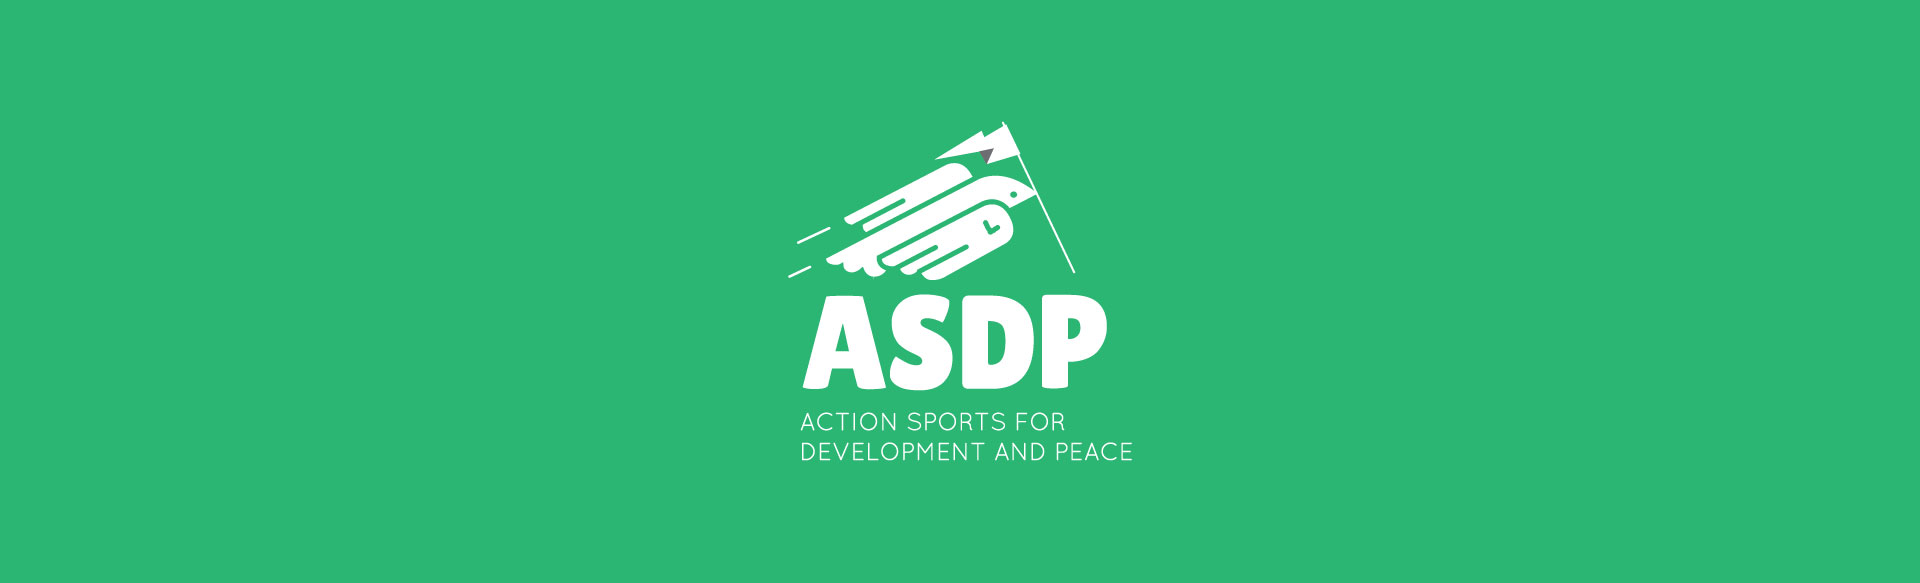 ASDP_logo_outlines_ongreen